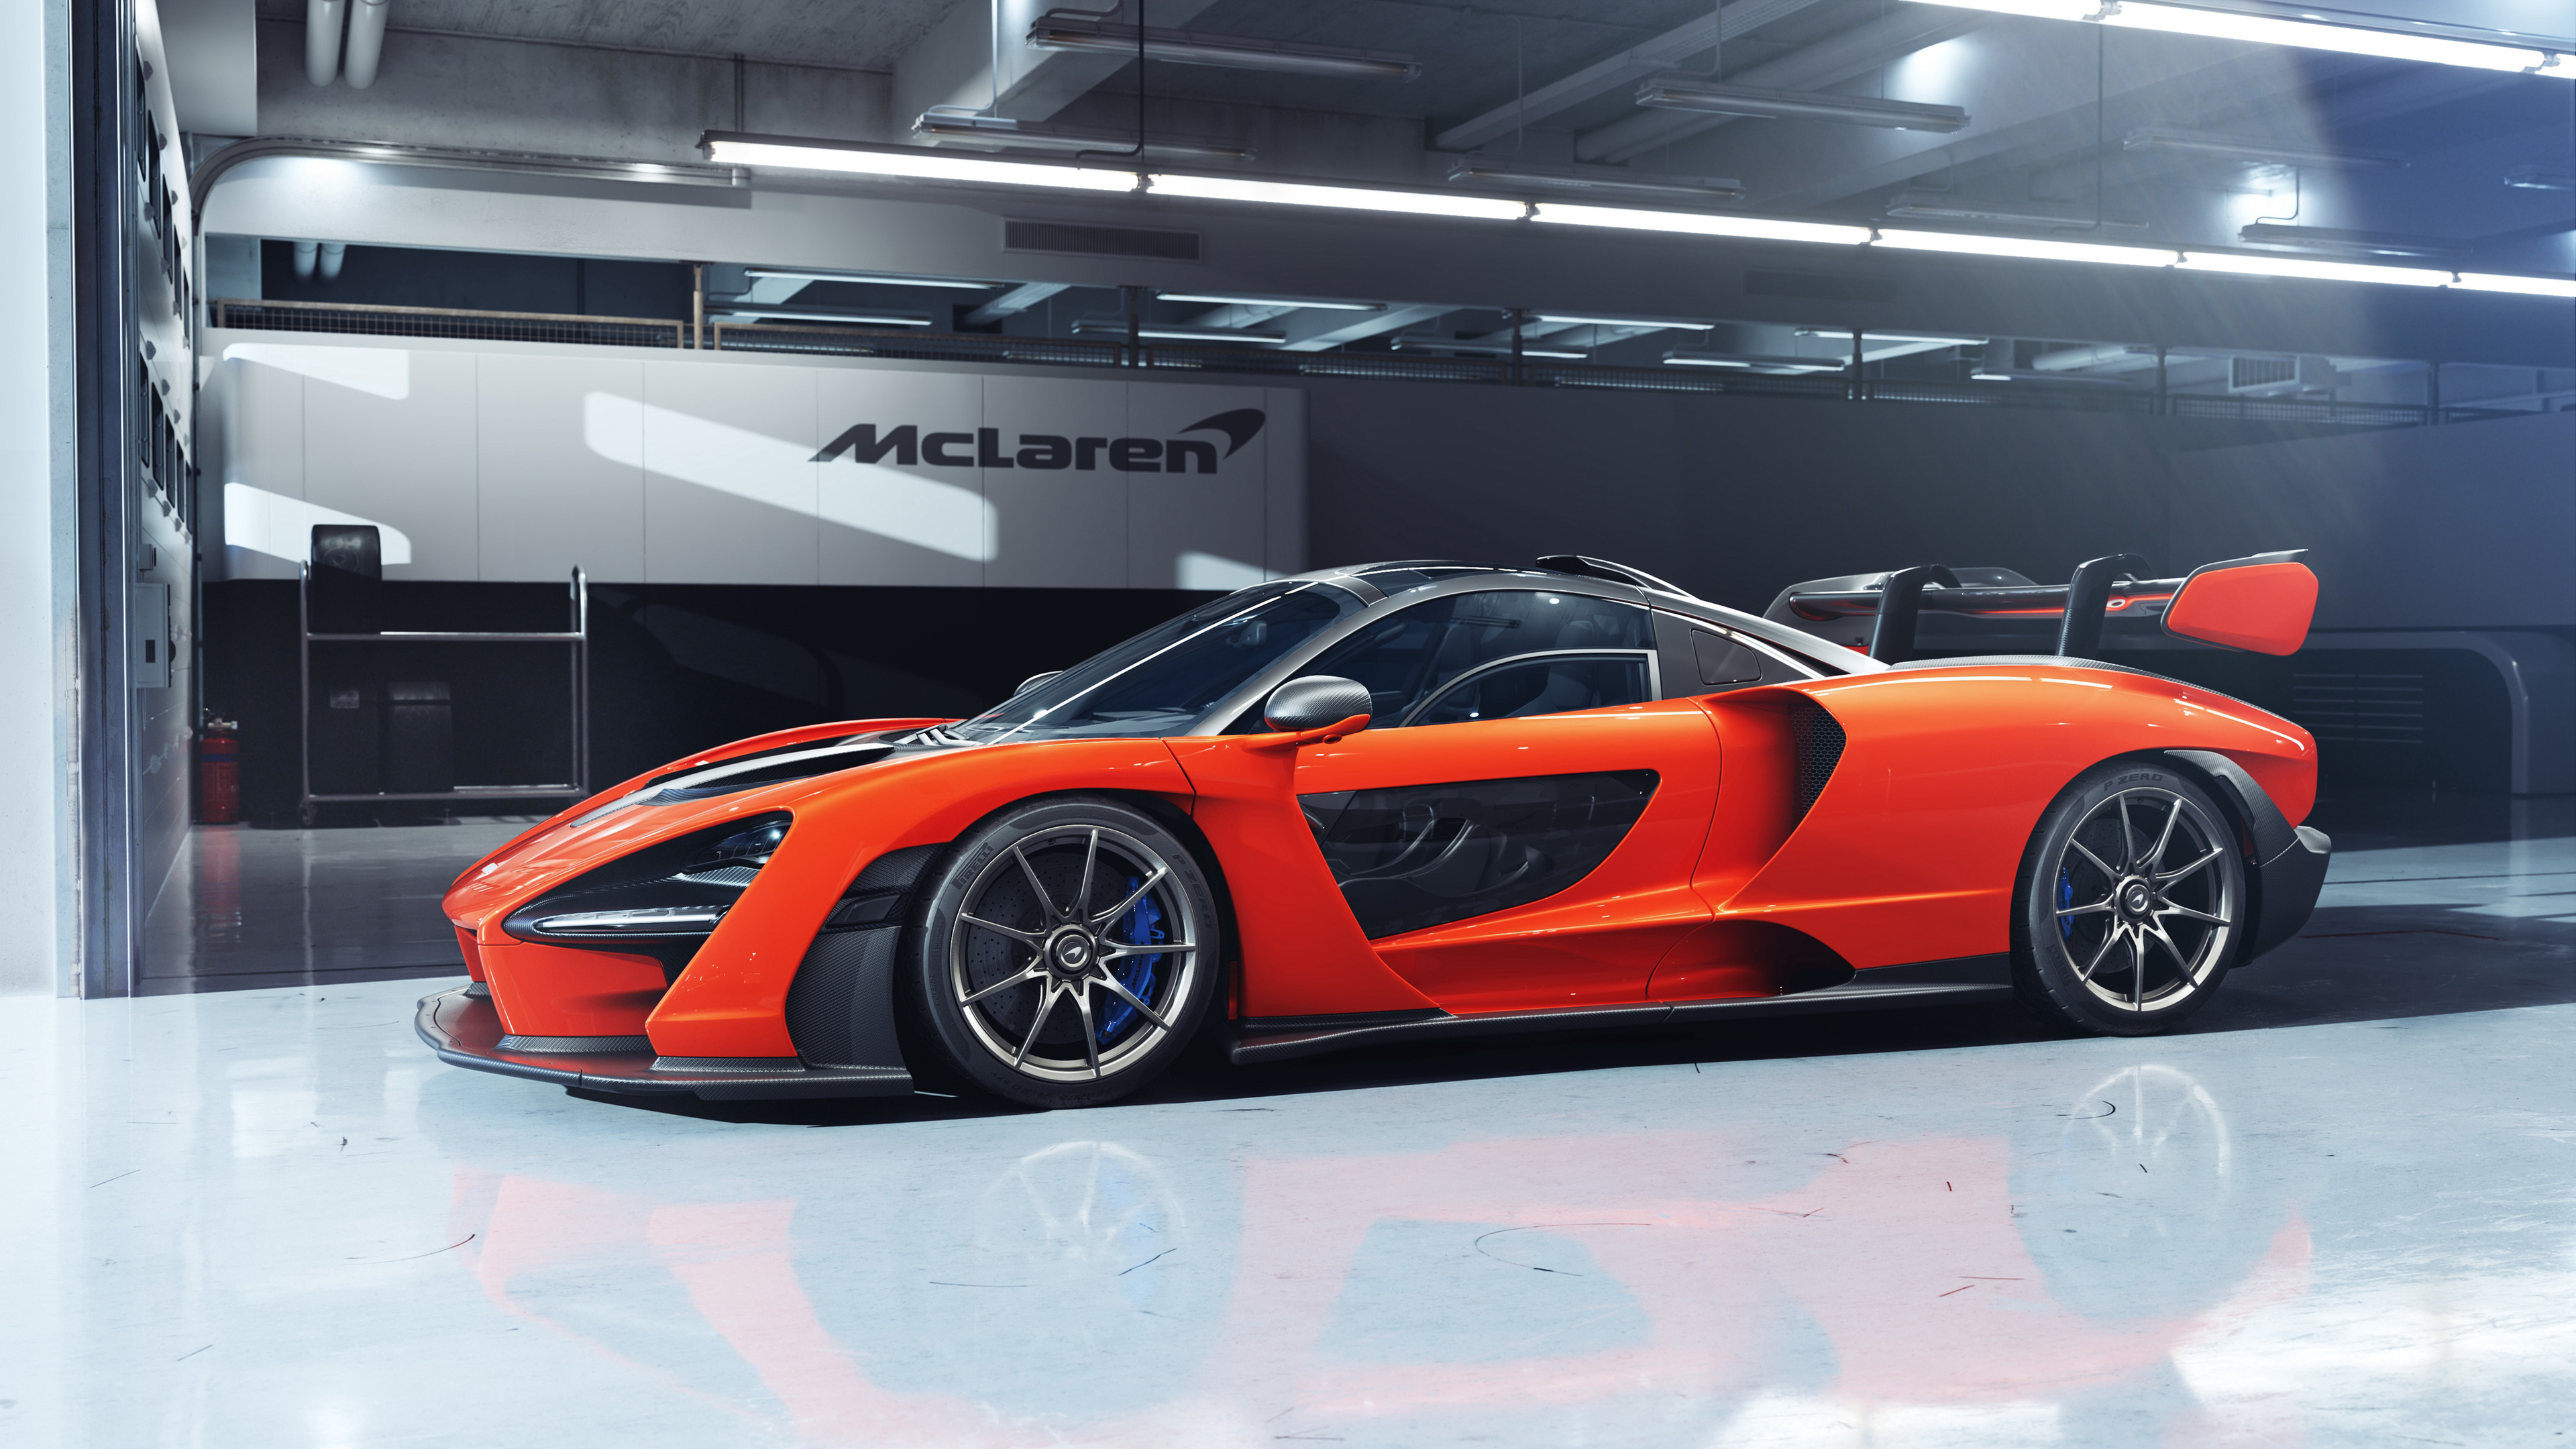 2018 mclaren senna 1539108689 - 2018 McLaren Senna - mclaren wallpapers, mclaren senna wallpapers, hd-wallpapers, 4k-wallpapers, 2018 cars wallpapers